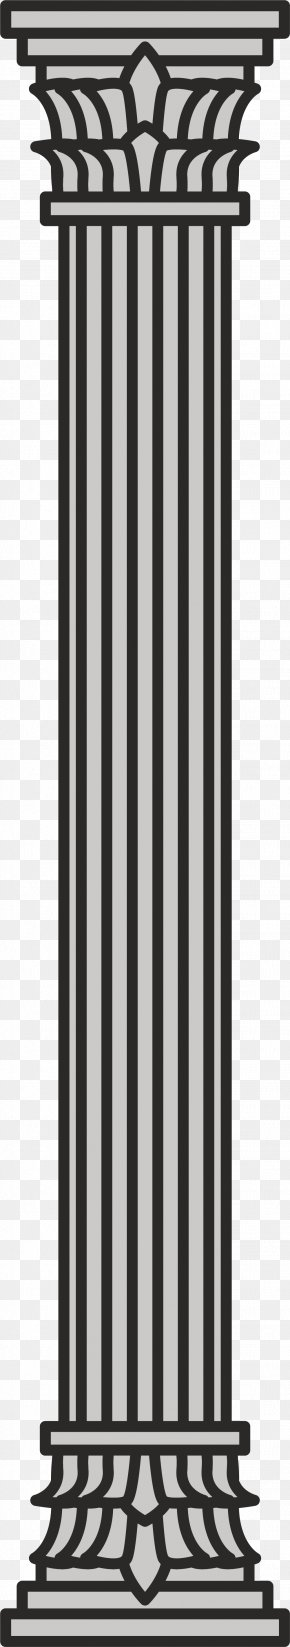 Grey Column - Column Black And White Walled Obelisk Grey Partition Wall PNG